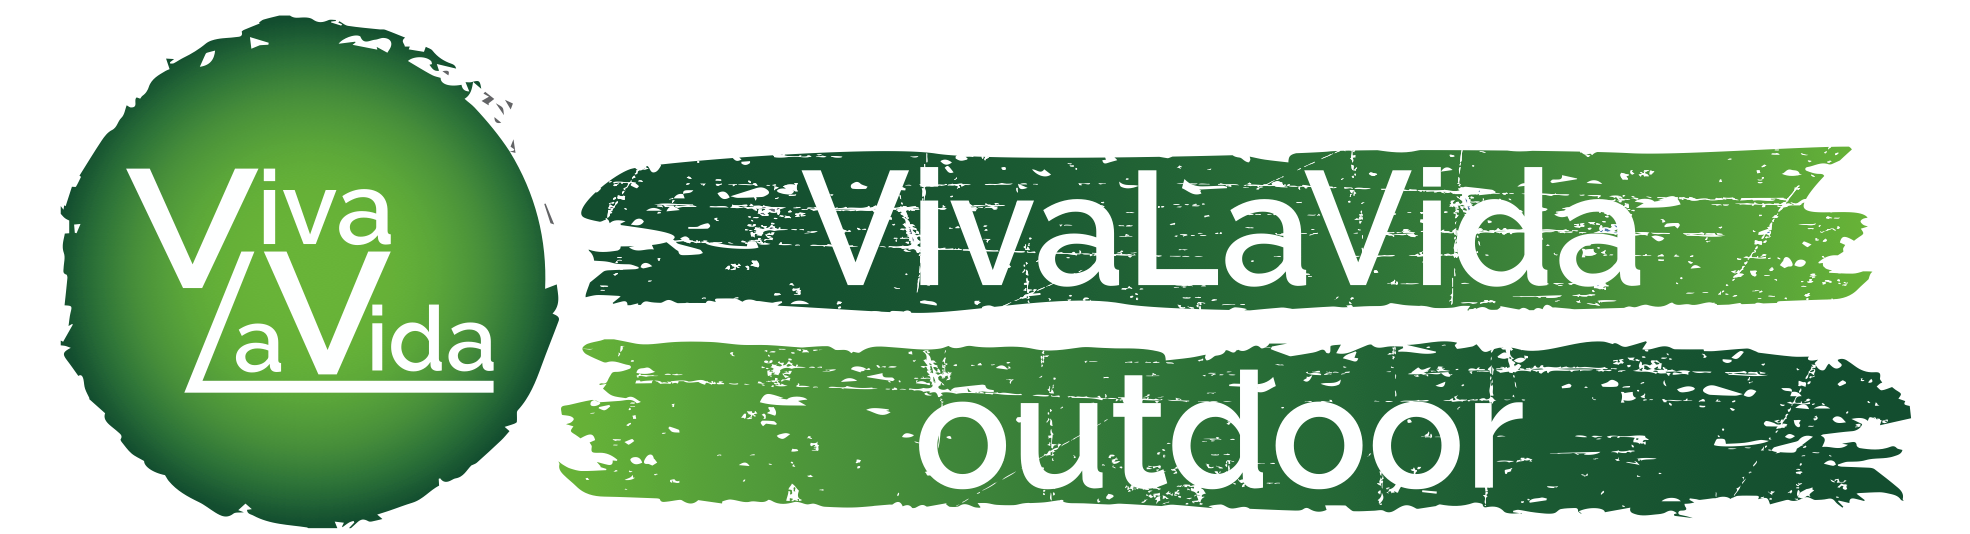 Vivalavida-Outdoor